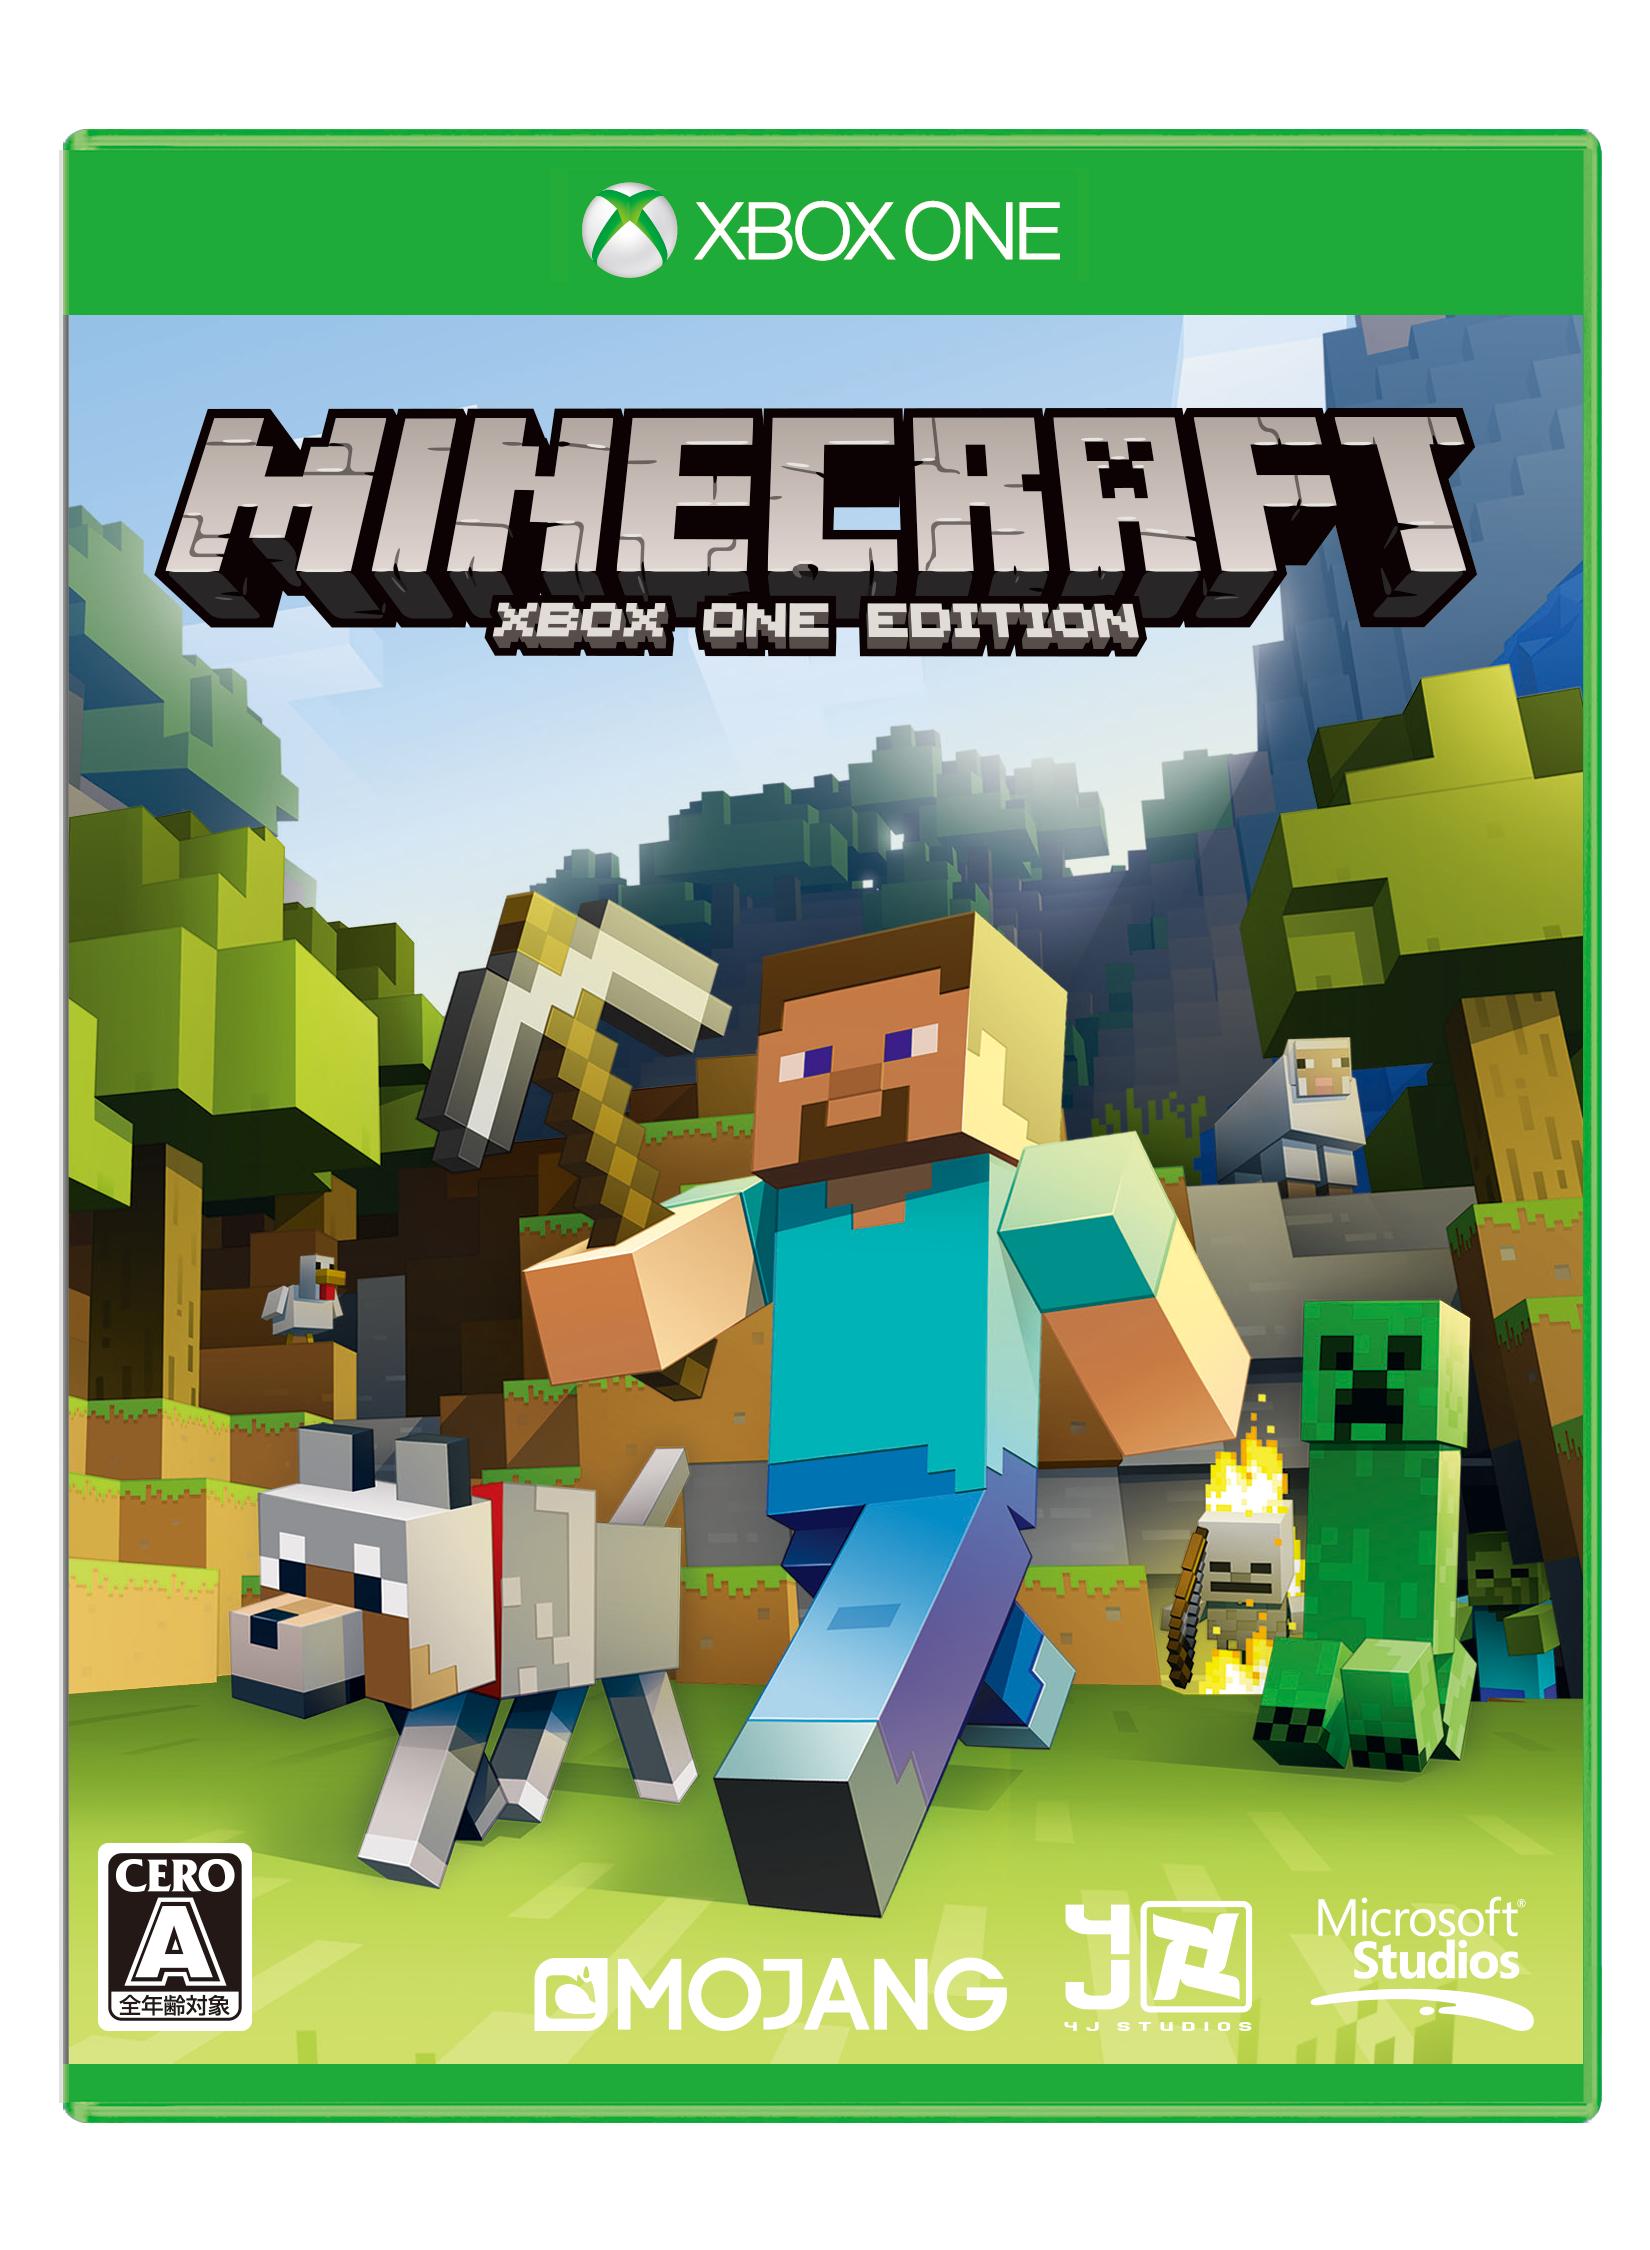 Minecraft Xbox One Edition ボックスの写真